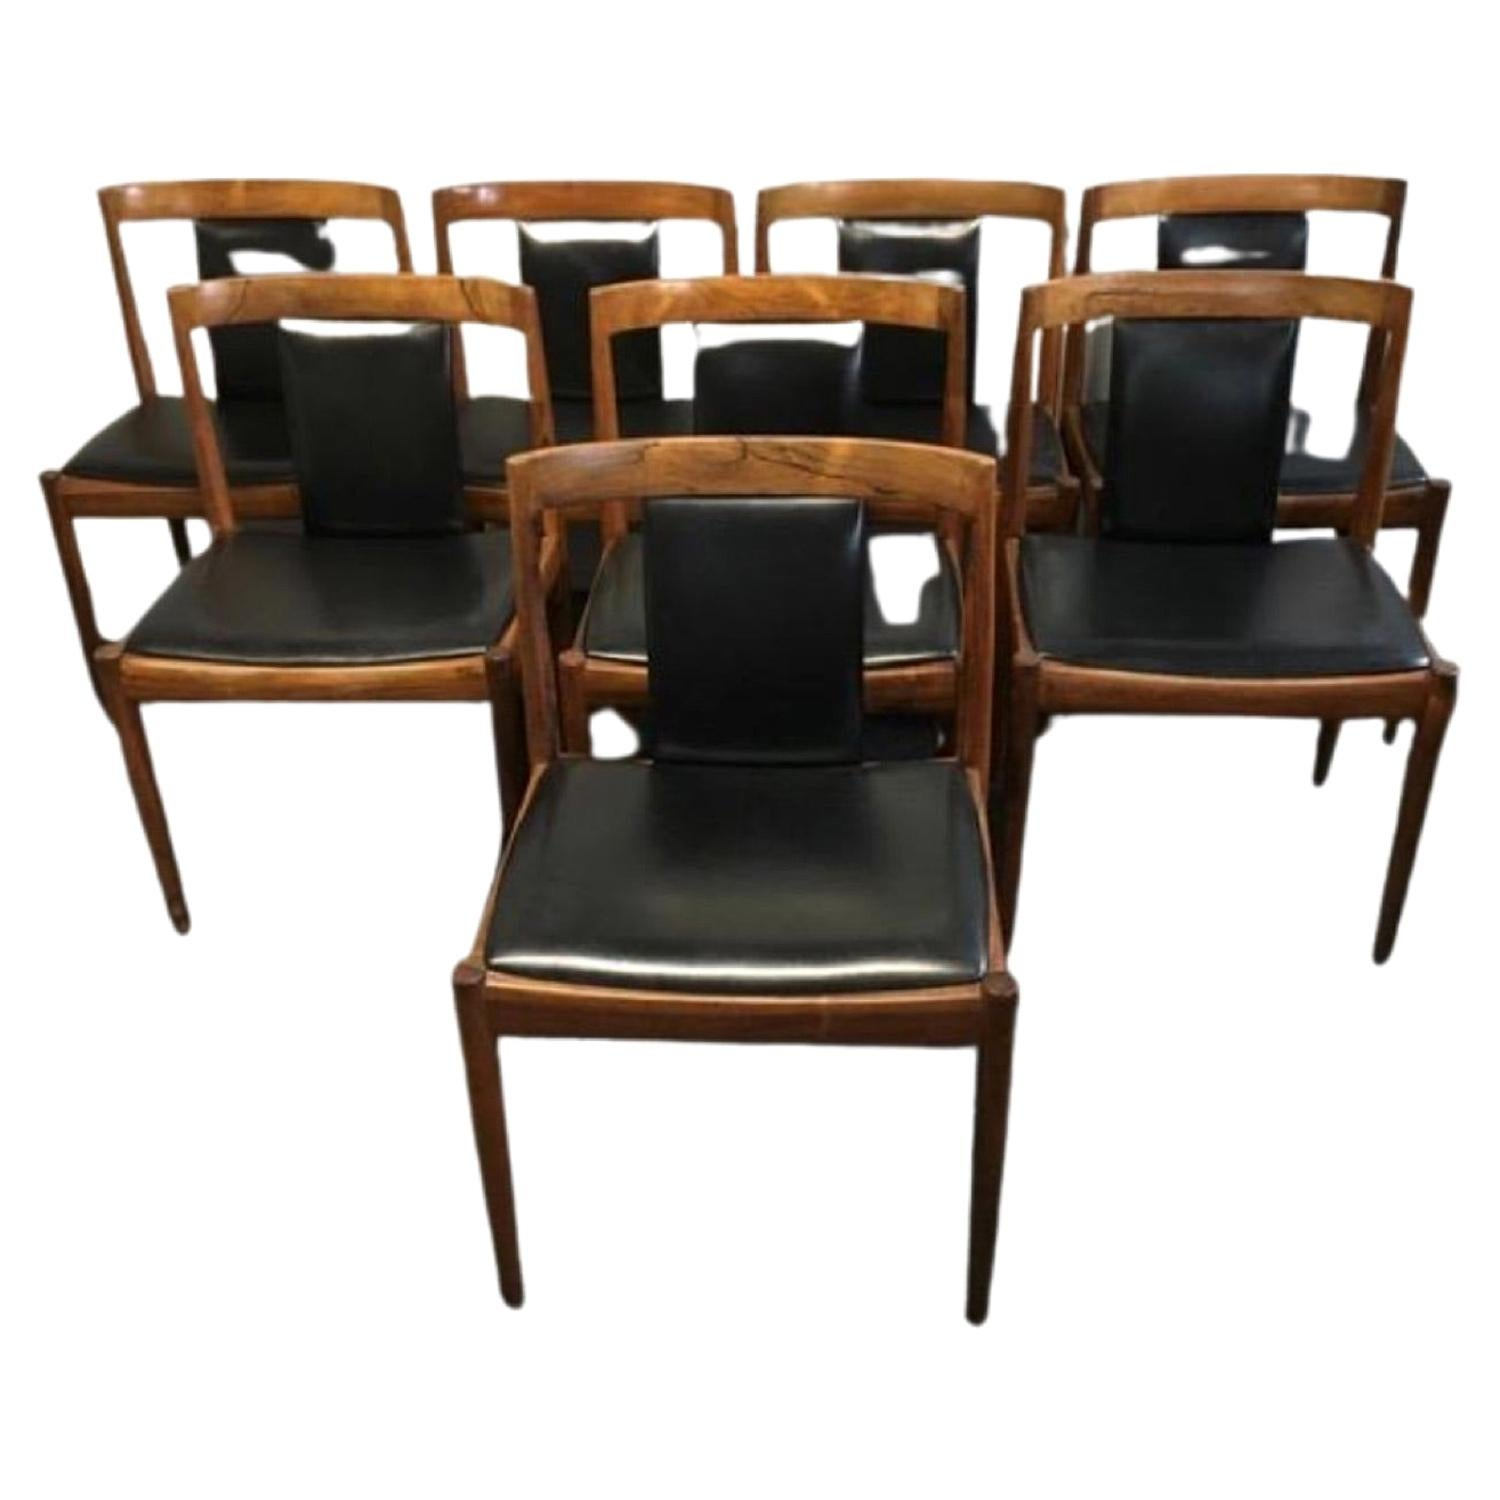 Set of 8 1960s Kai Kristiansen Rosewood Dining Chairs